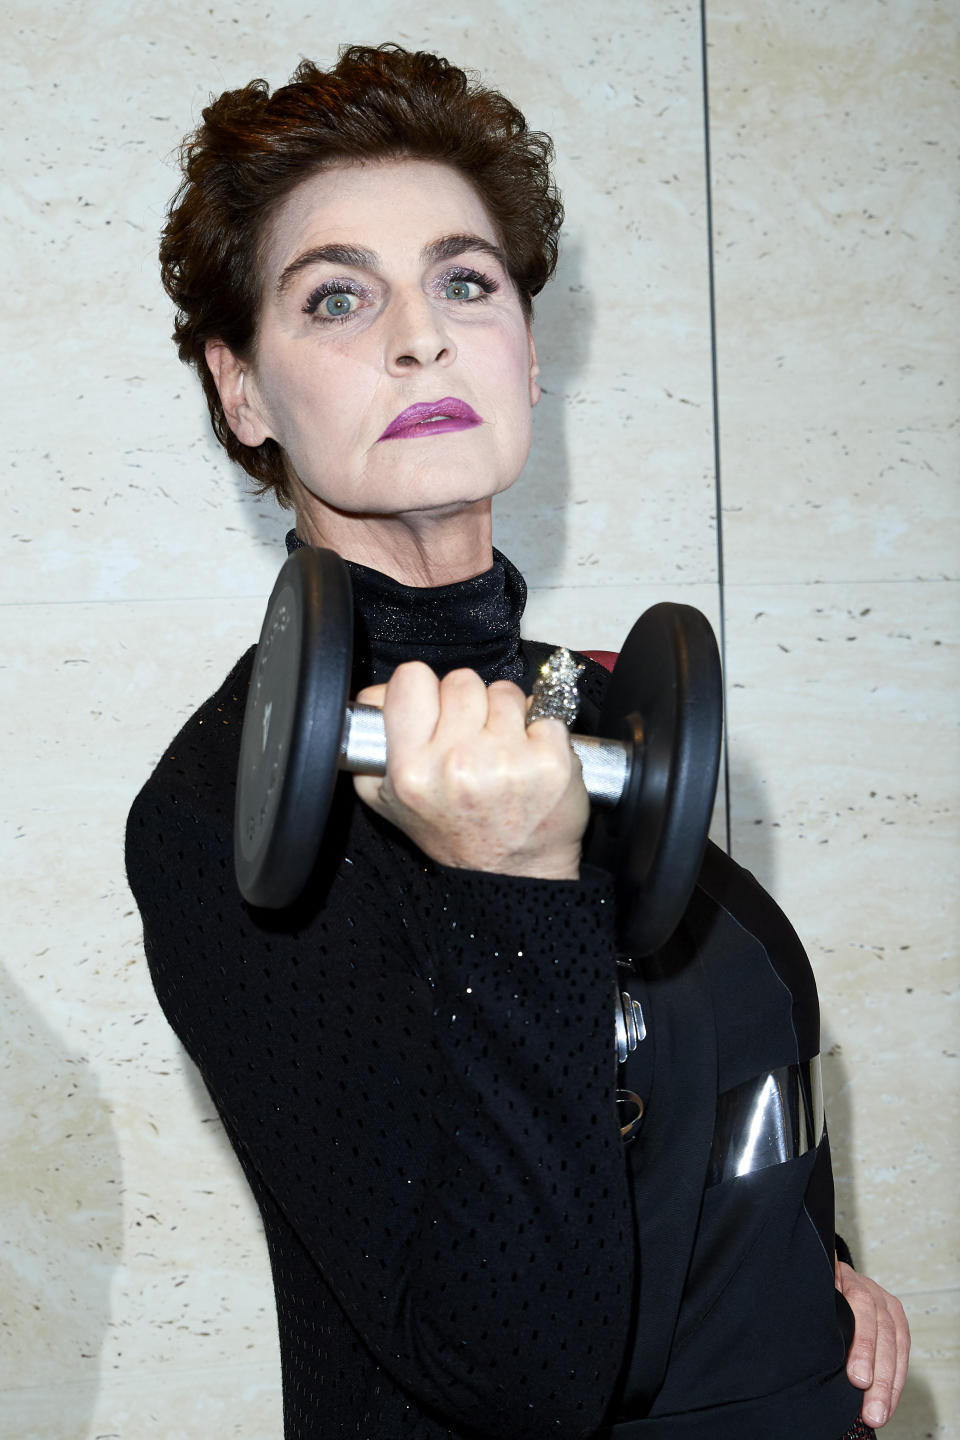 MADRID, SPAIN - FEBRUARY 26:  Antonia Dell'Atte attends Technogym Wellness Store opening on February 26, 2019 in Madrid, Spain. (Photo by Carlos Alvarez/Getty Images)